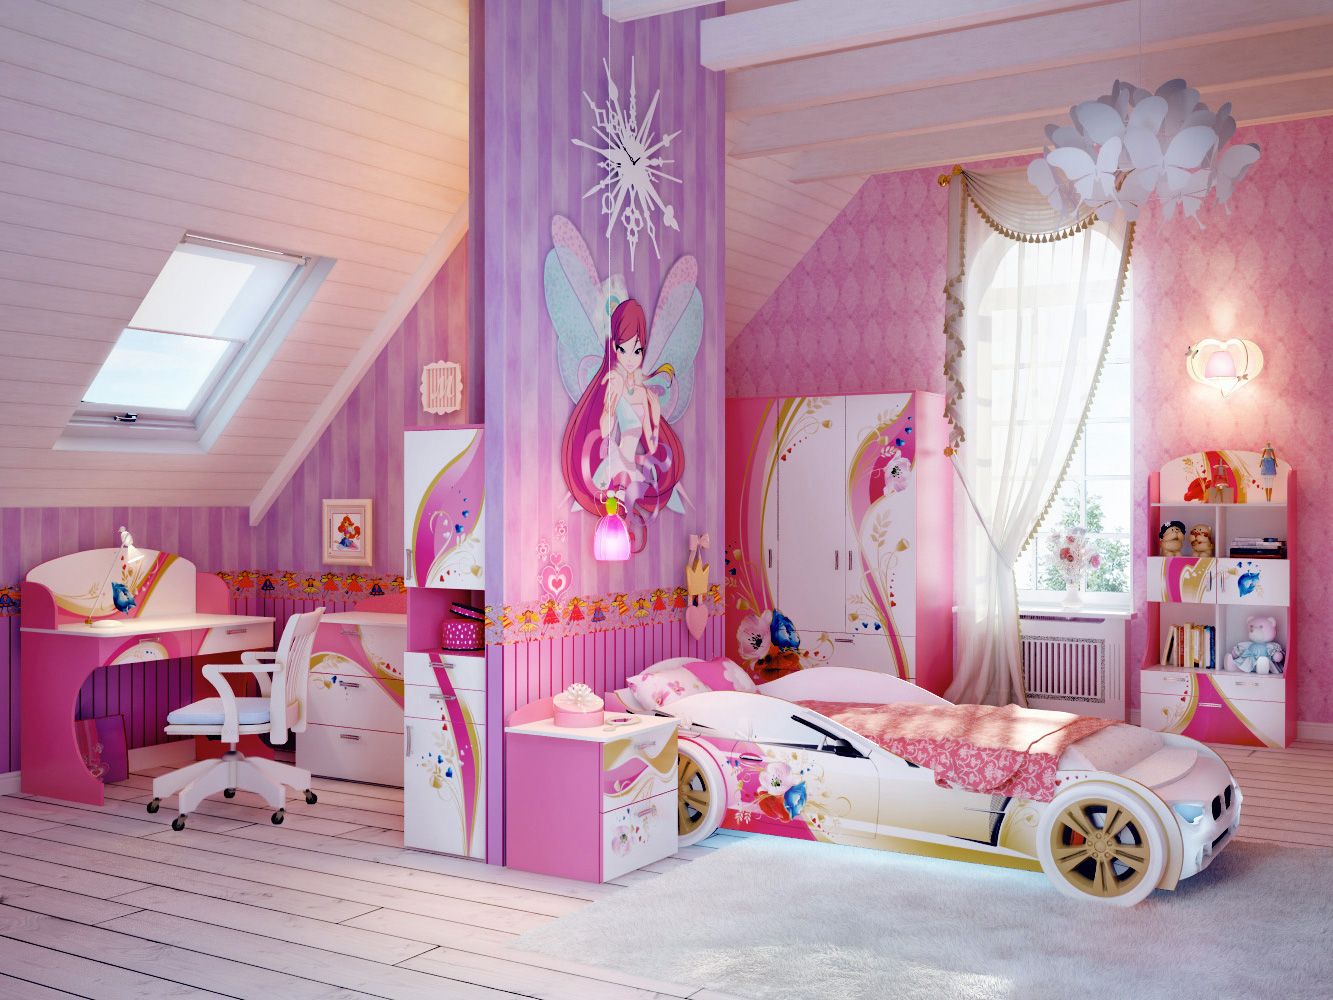 Race Car Room Decor Girl Bedroom With Race Car Bed Room Decor And Design